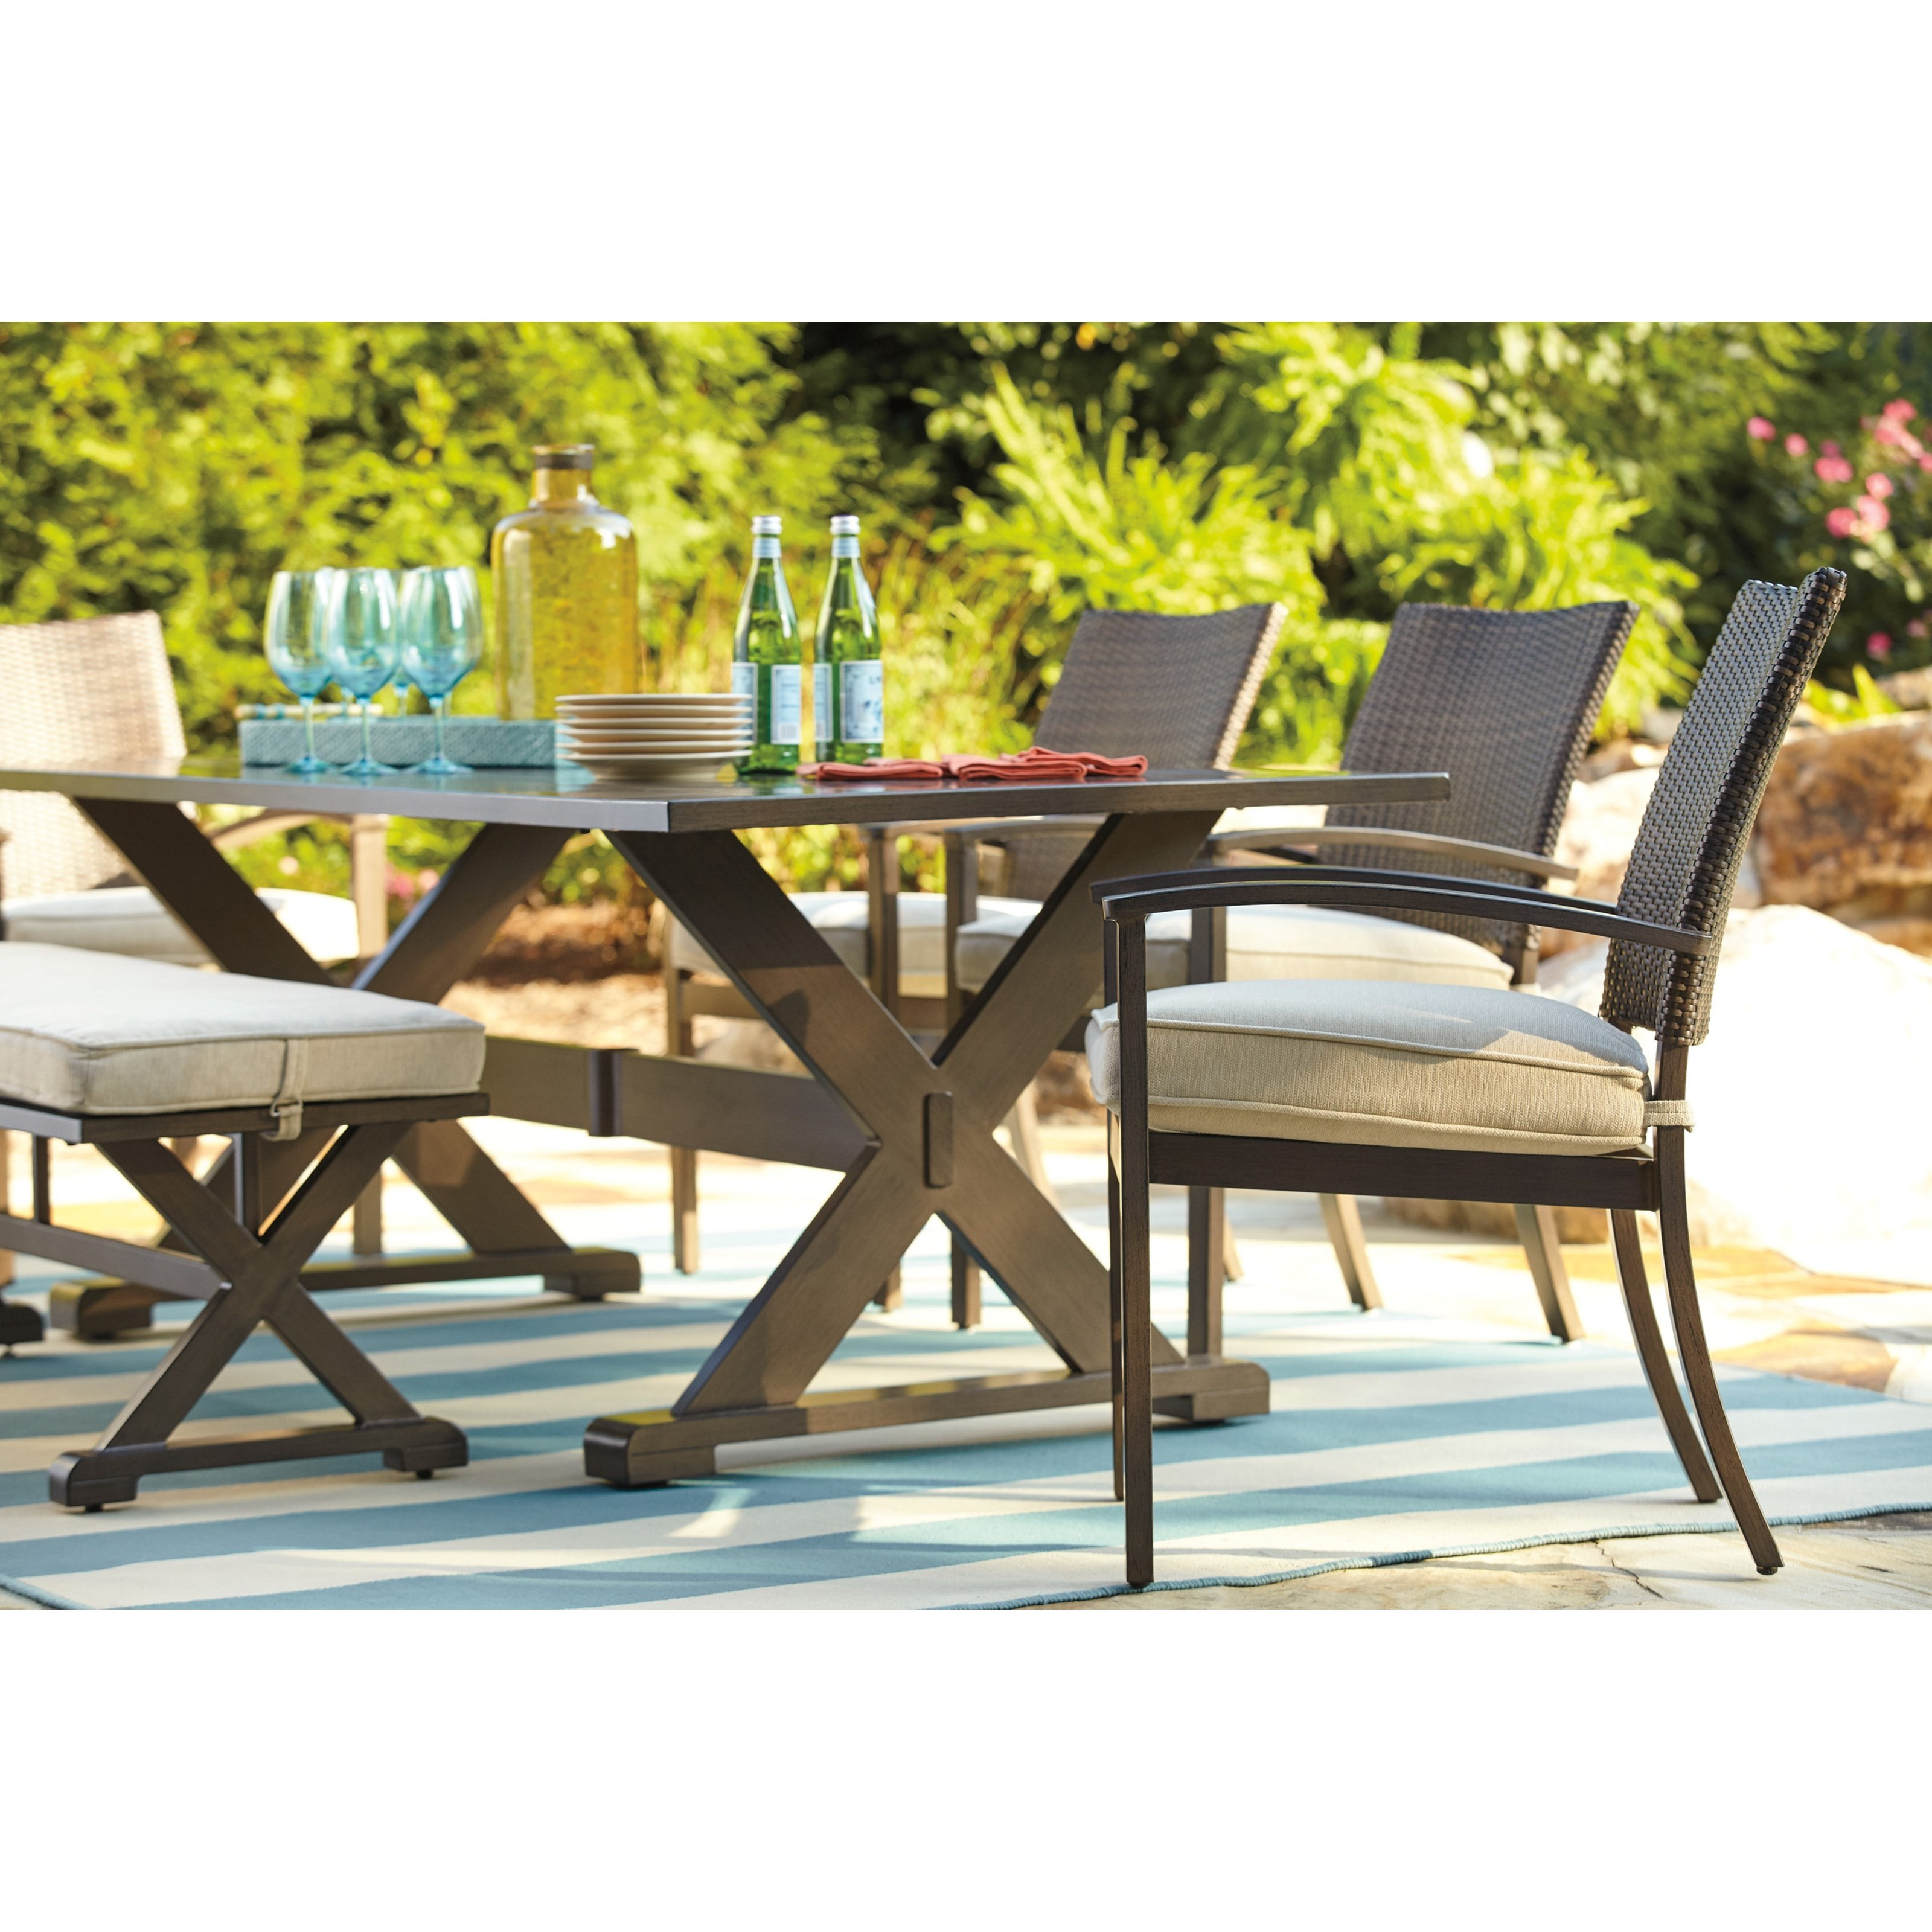 Signature Design by Ashley Moresdale Outdoor Dining Set with Bench Knight Furniture & Mattress